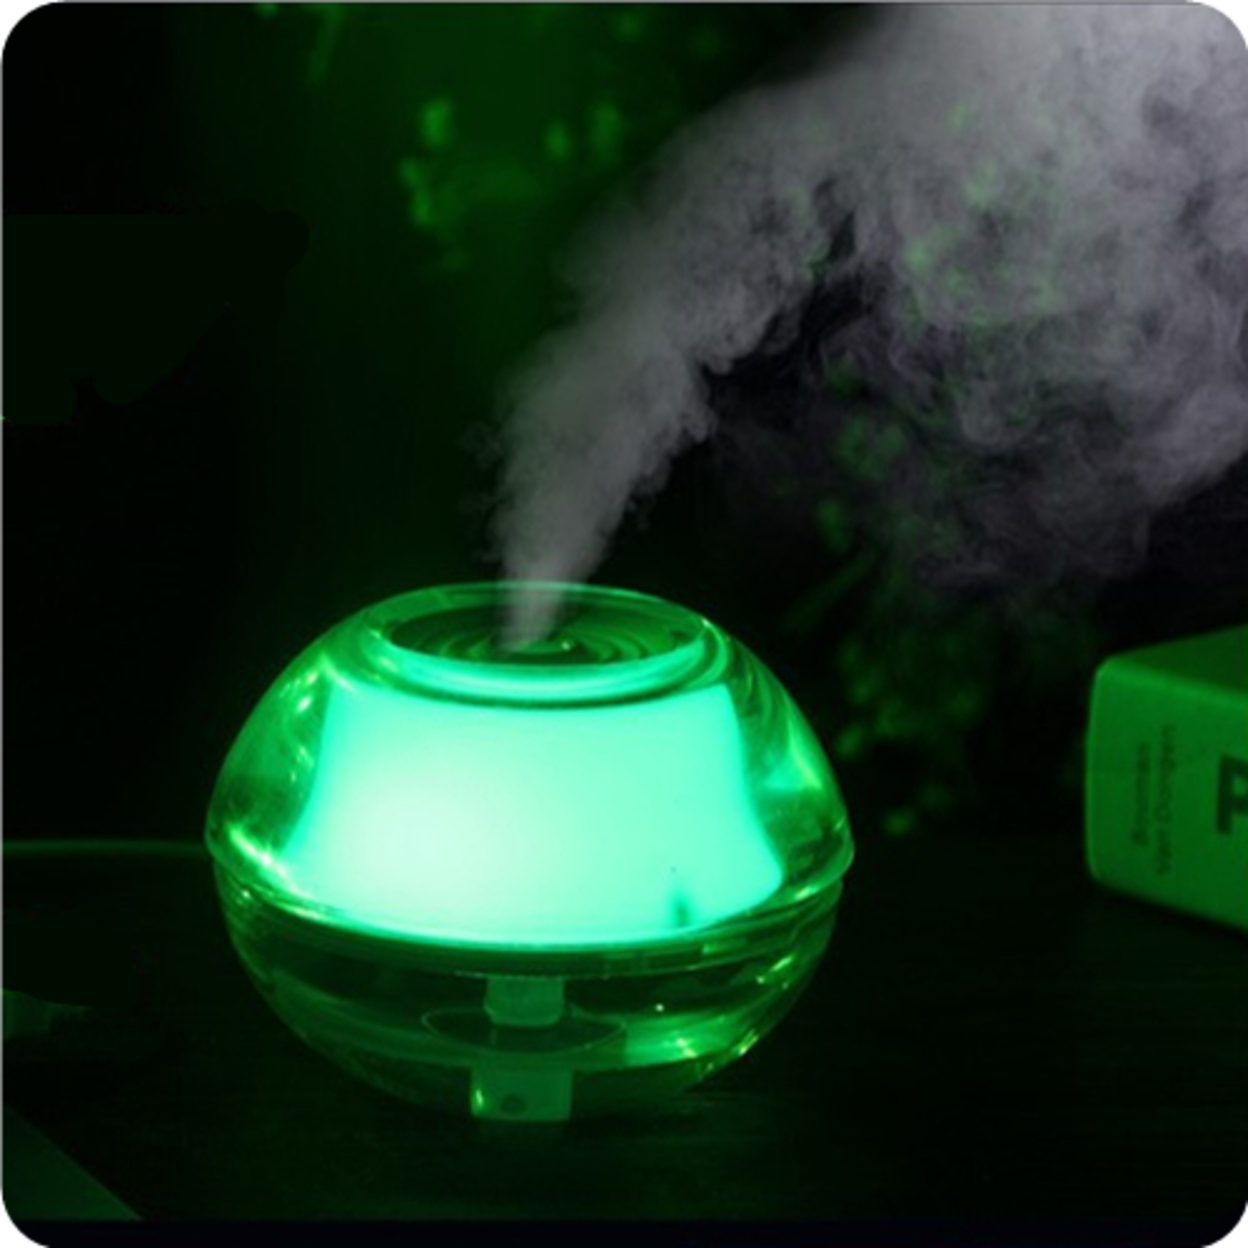 LED Air Humidifier - Green 58e7ebc440f76c54832a3eda